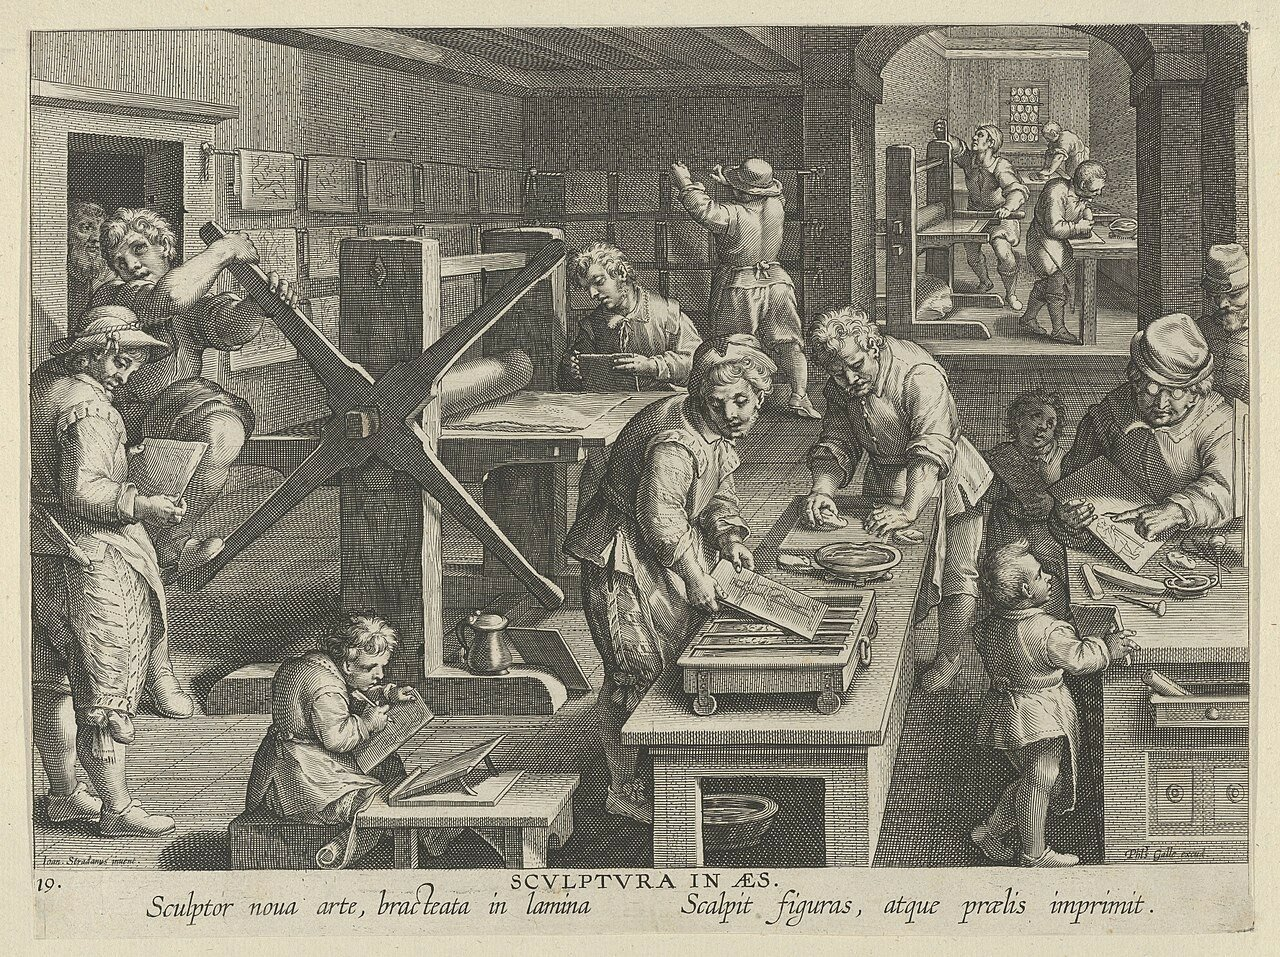 1280px-New_Inventions_of_Modern_Times_-Nova_Reperta-,_The_Invention_of_Copper_Engraving,_plate_19_MET_DP841117.jpg